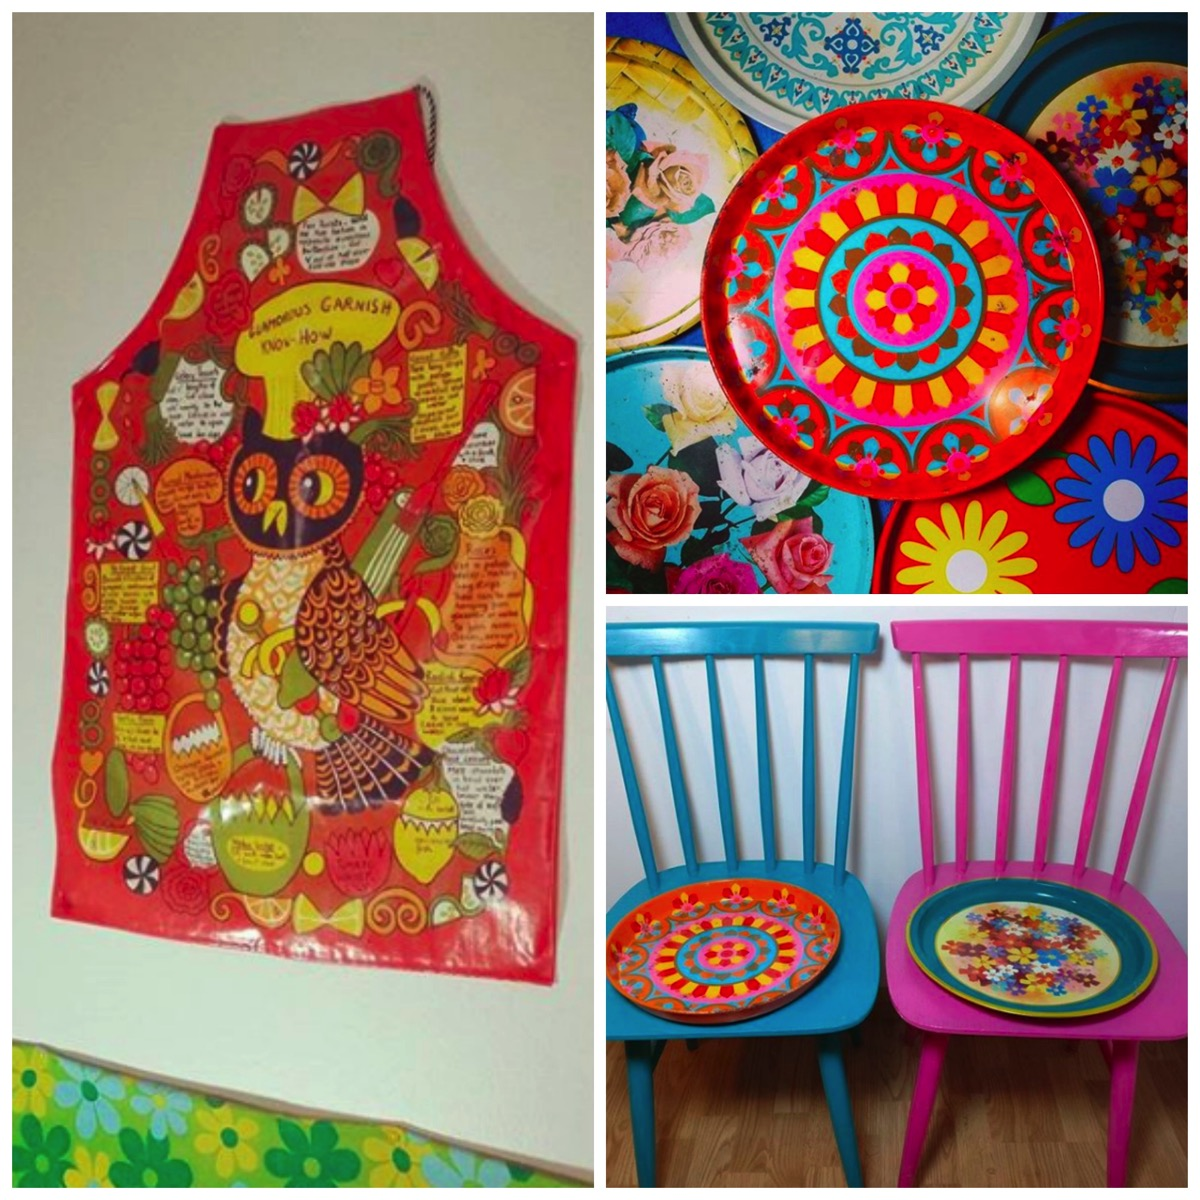 Maija home finland colorful collections vintage